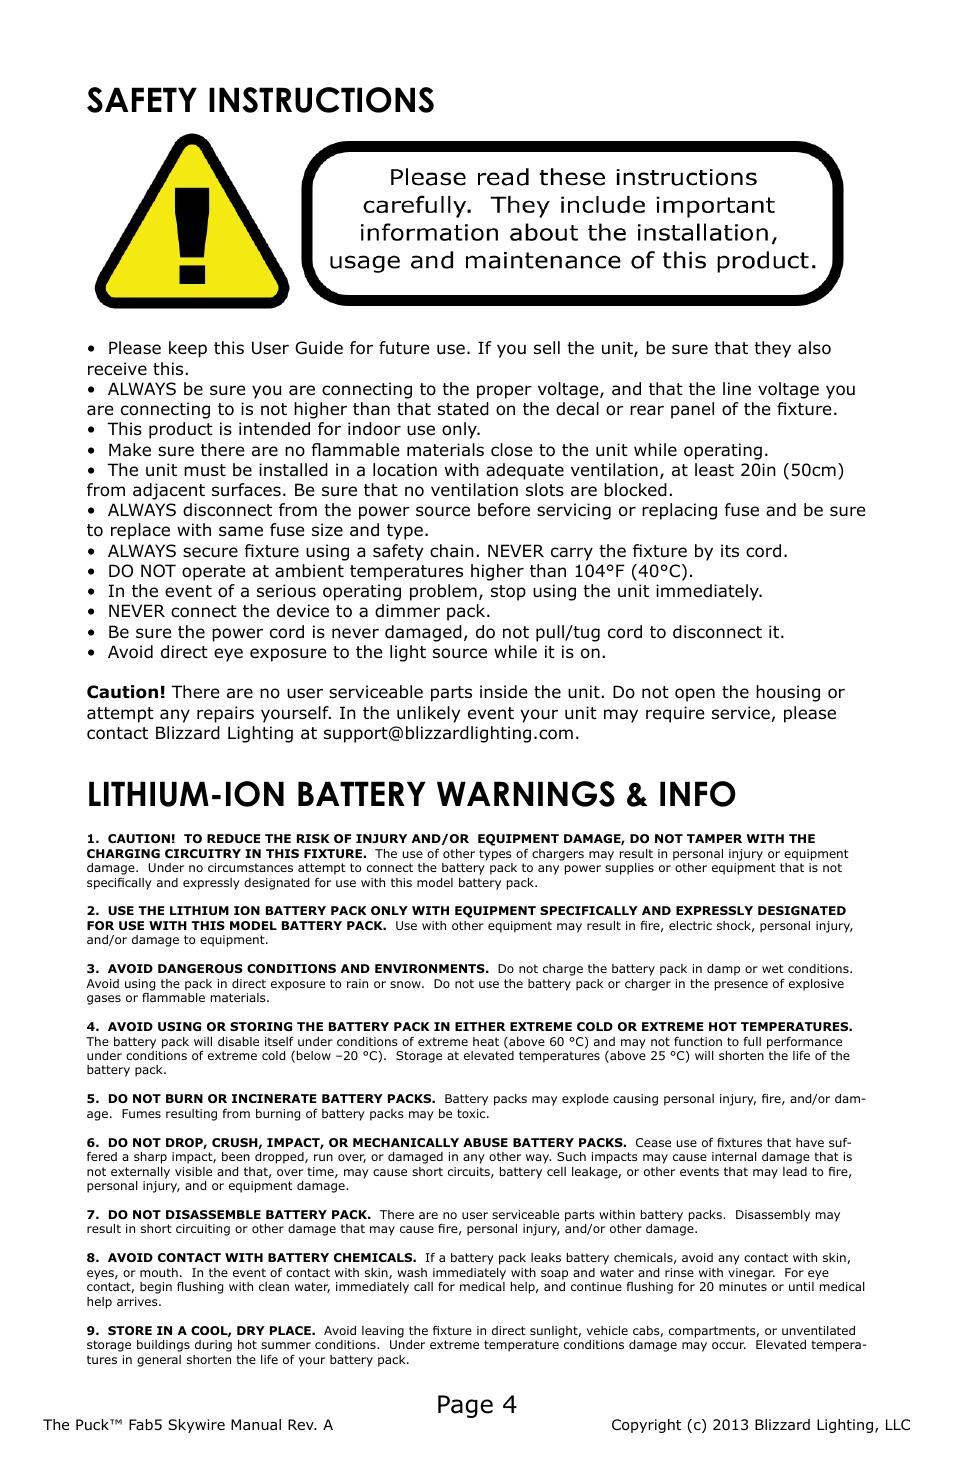 Safety instructions Lithium-ion battery warnings u0026 info Page 4 | Blizzard Lighting  sc 1 st  manualsdir.com & Safety instructions Lithium-ion battery warnings u0026 info Page 4 ...